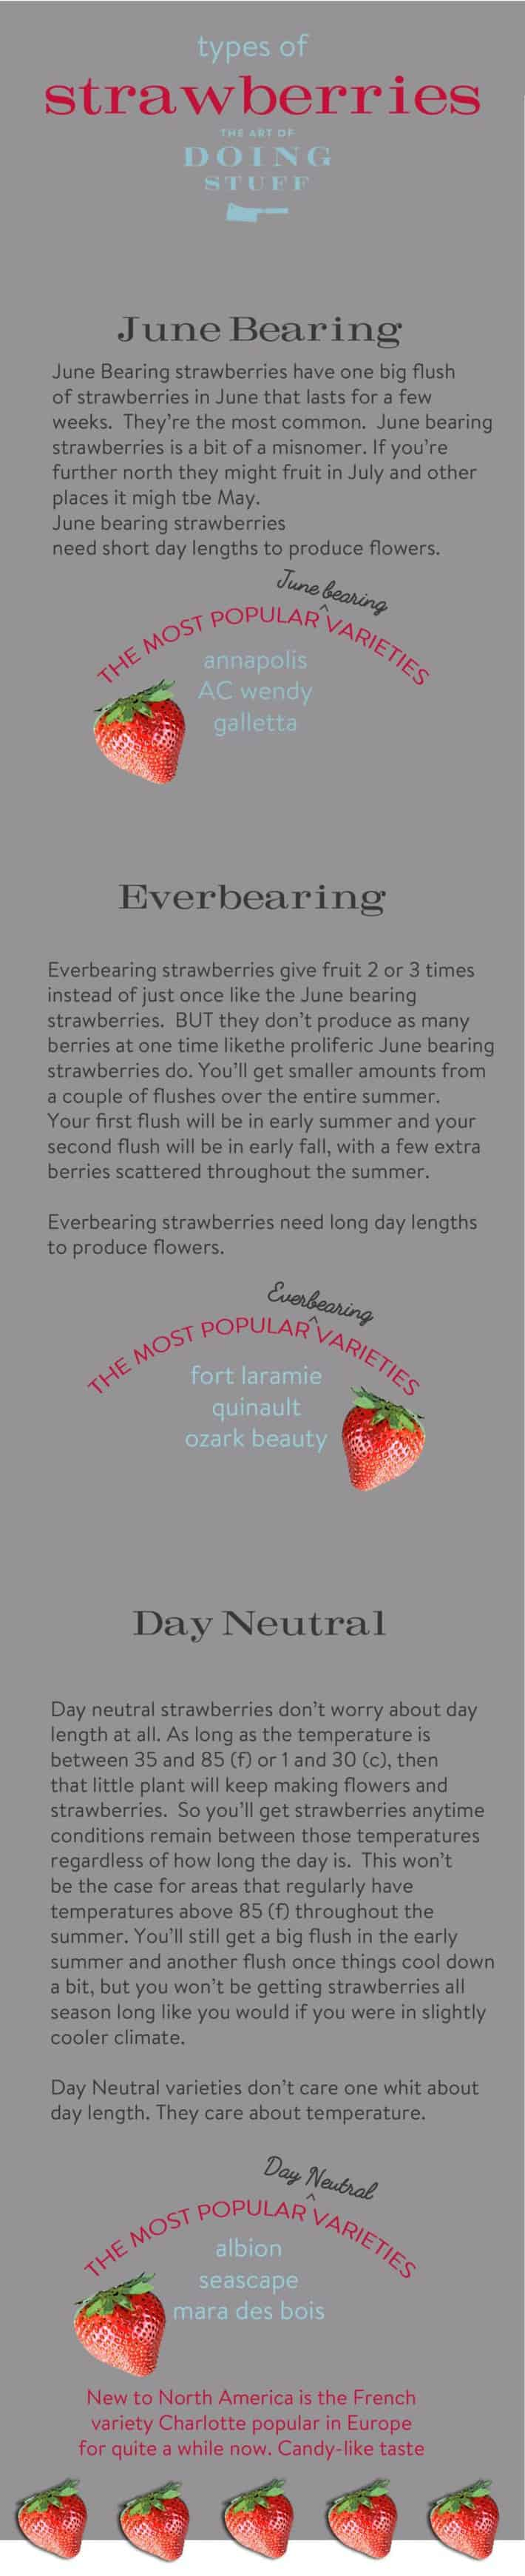 varieties-of-strawberries